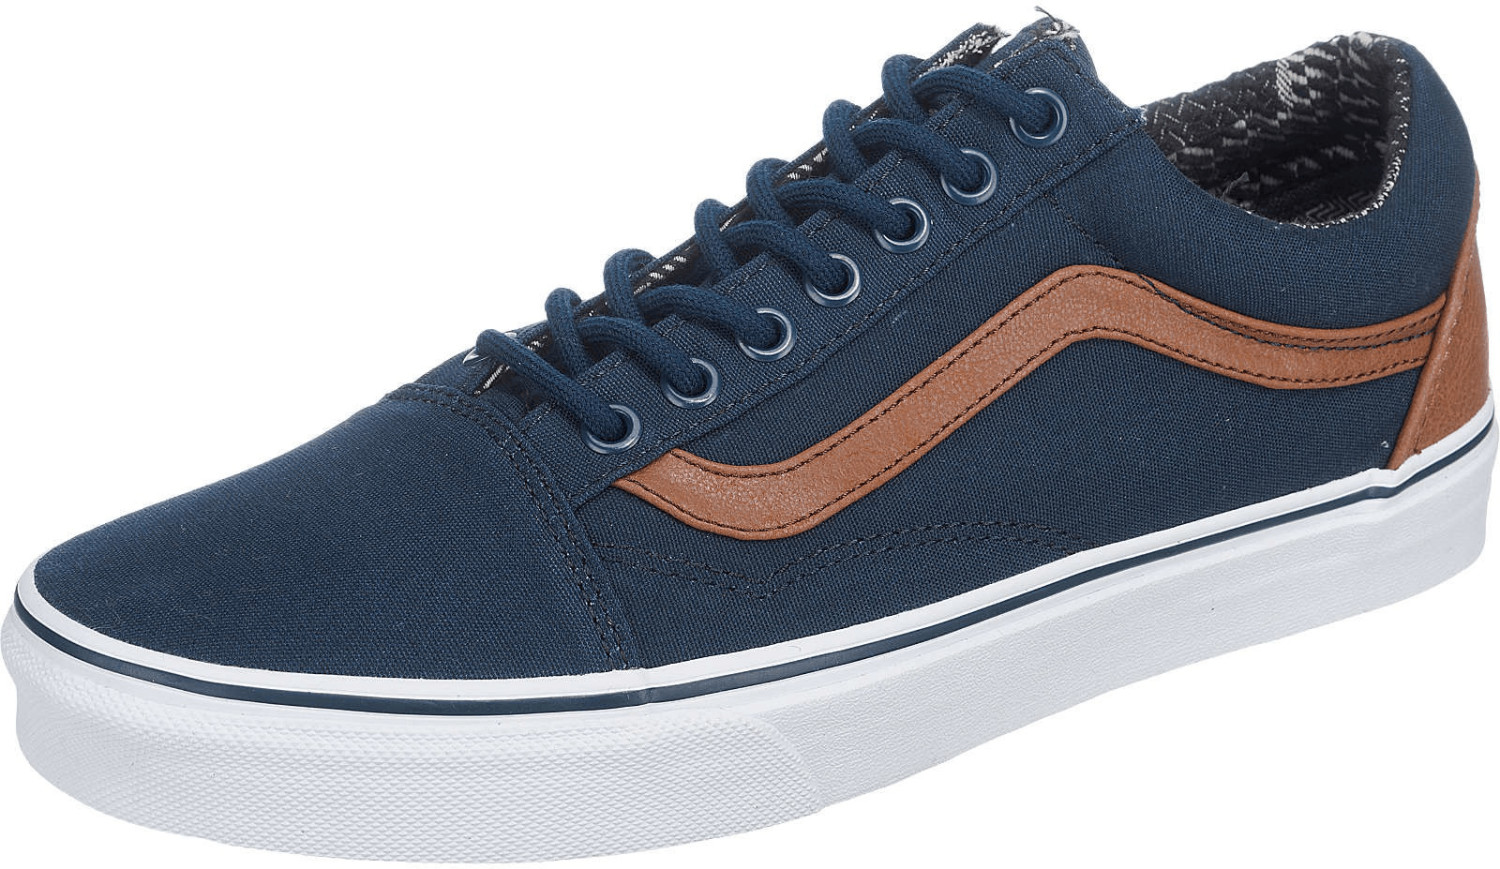 Vans Old Skool dress blues/material mix